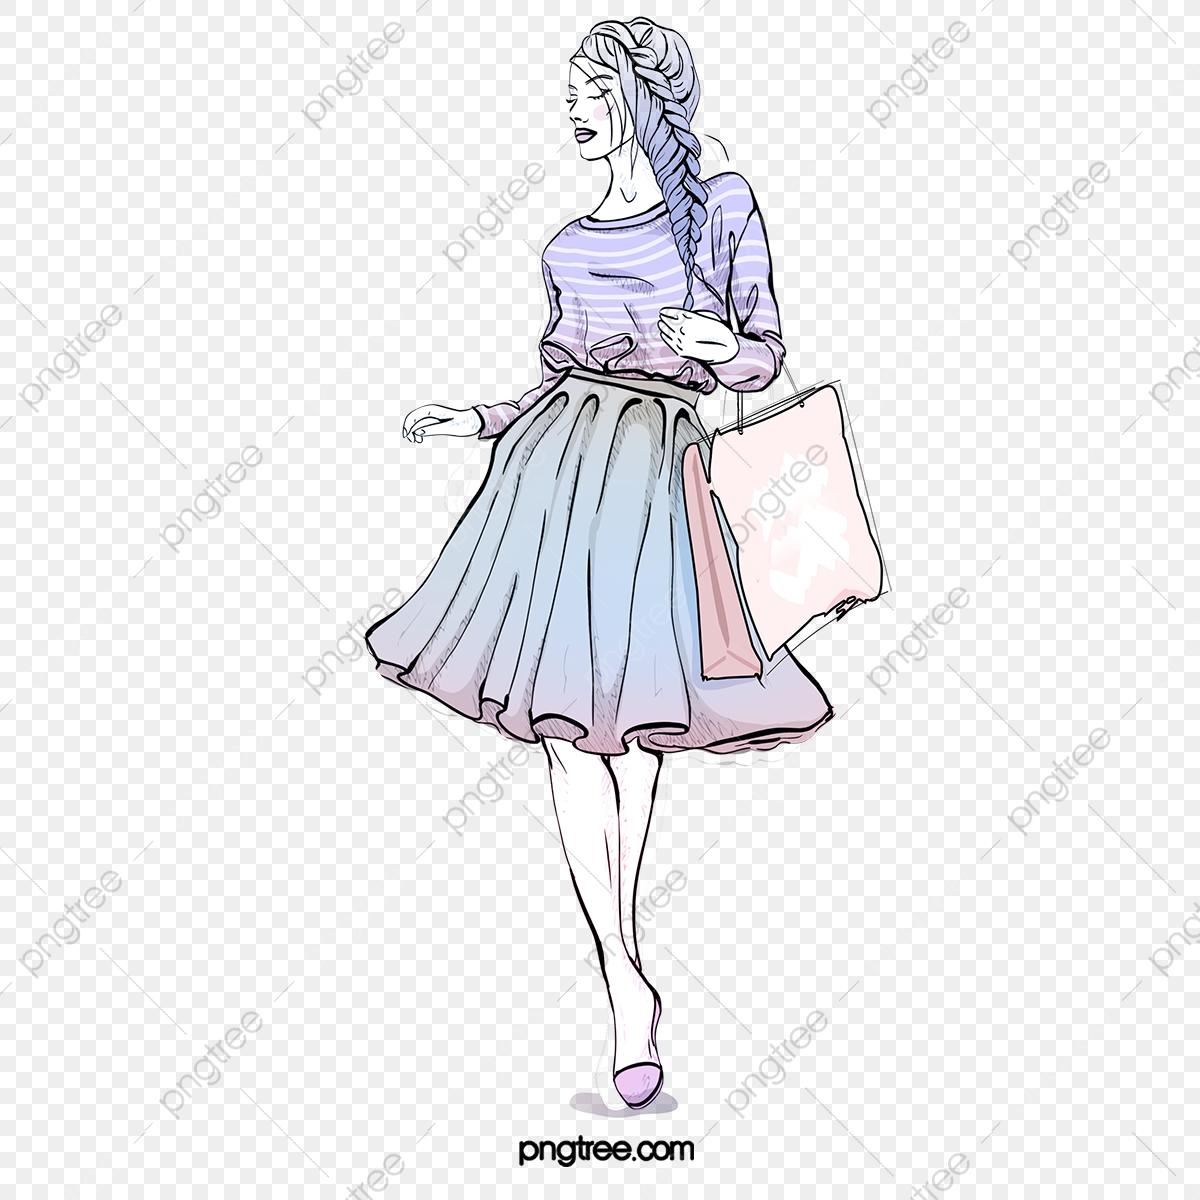 Fashion Fashion Hand Drawn Shopping Girl Elements Latest Fashion Fashion Watercolor Png Transparent Clipart Image And Psd File For Free Download